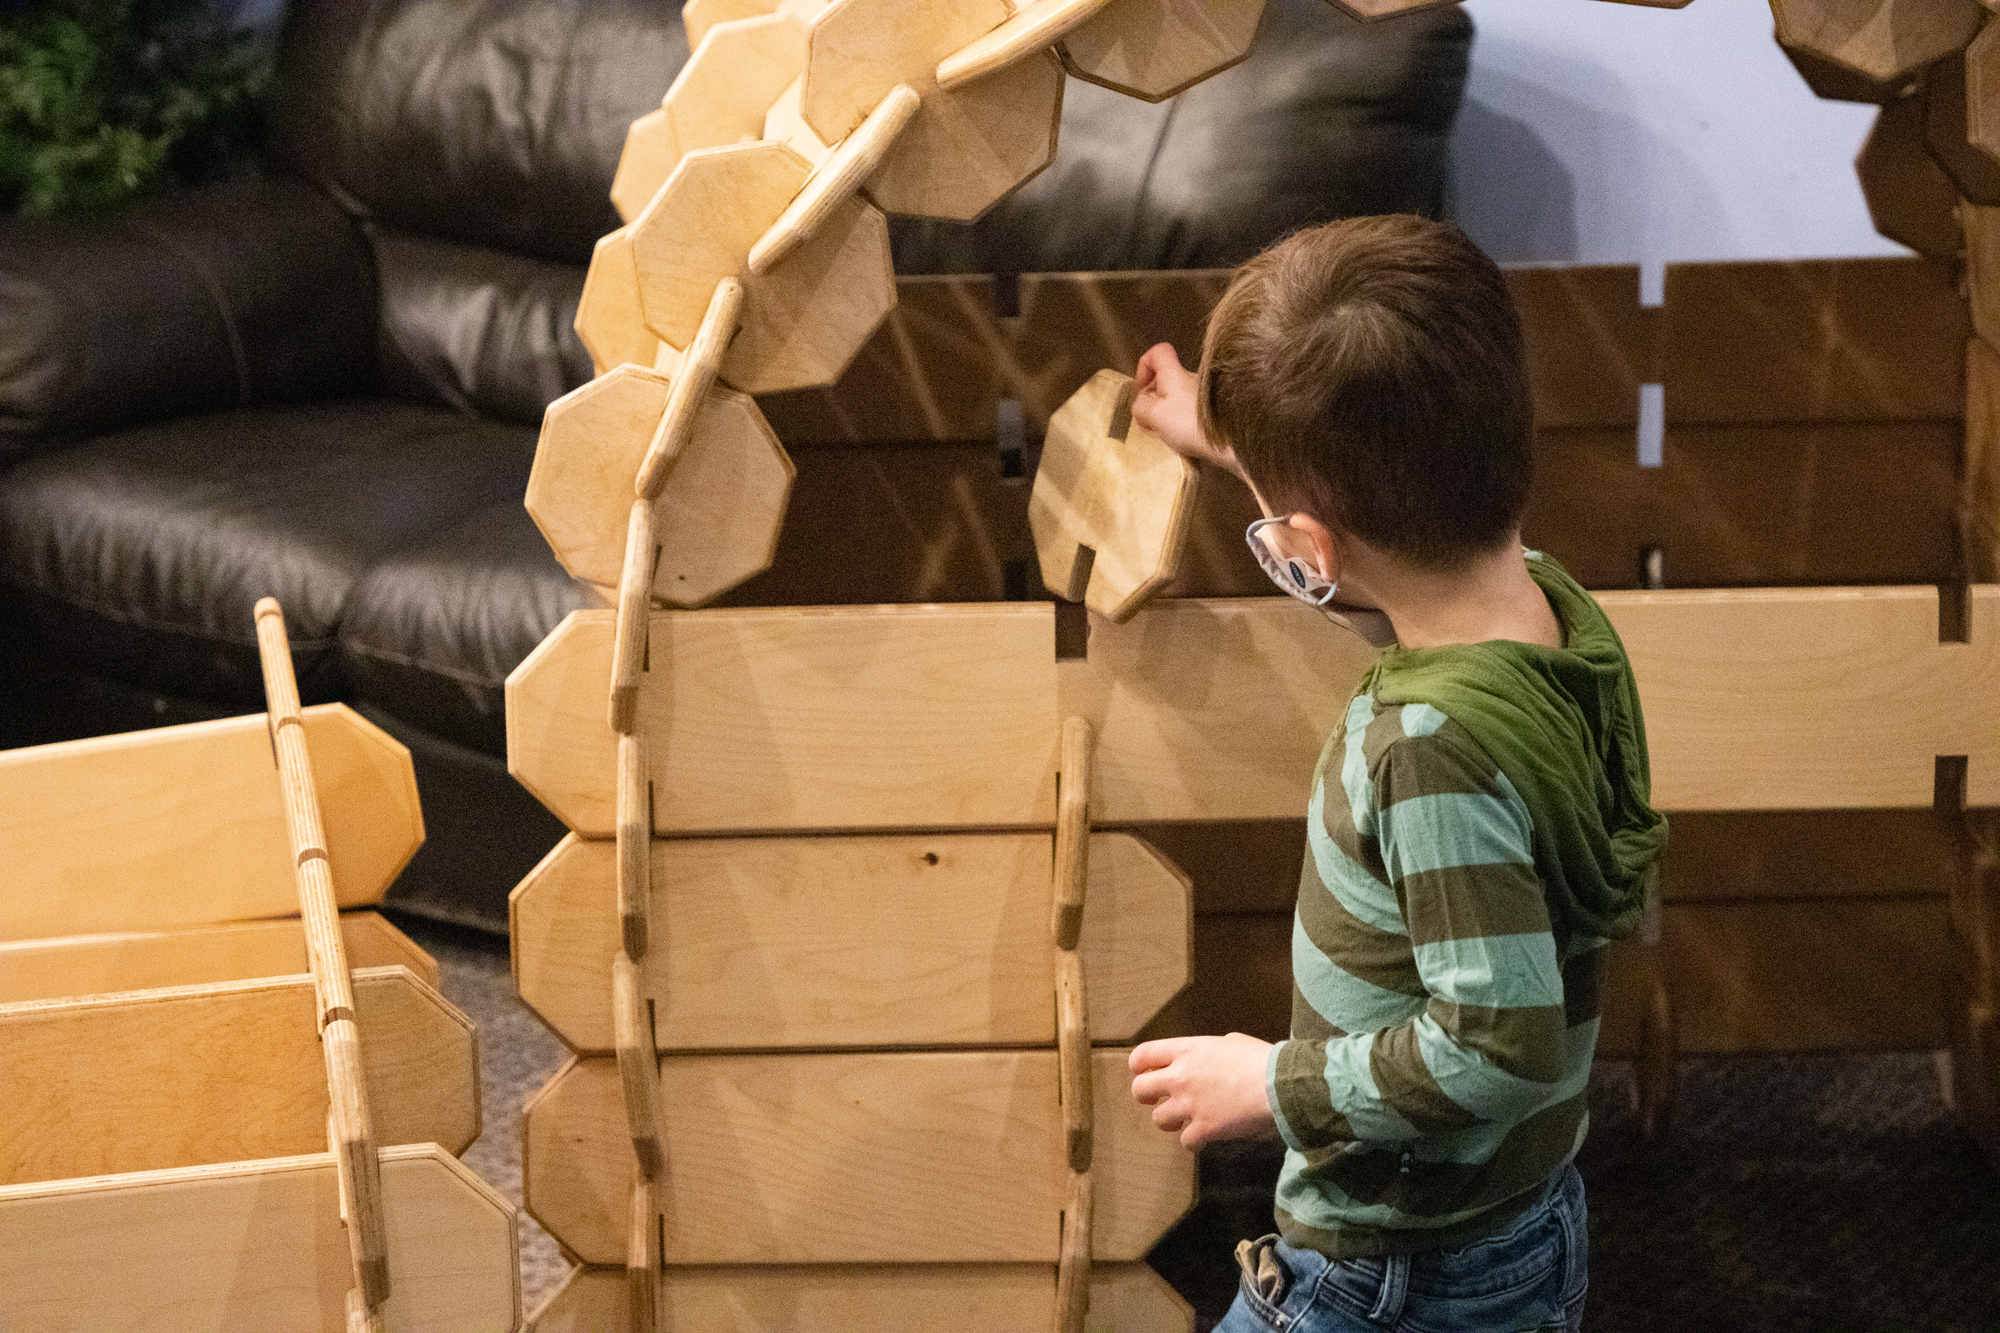 A young boy builds a wooden fort in CDM's temporary exhibit, The Great Indoors.